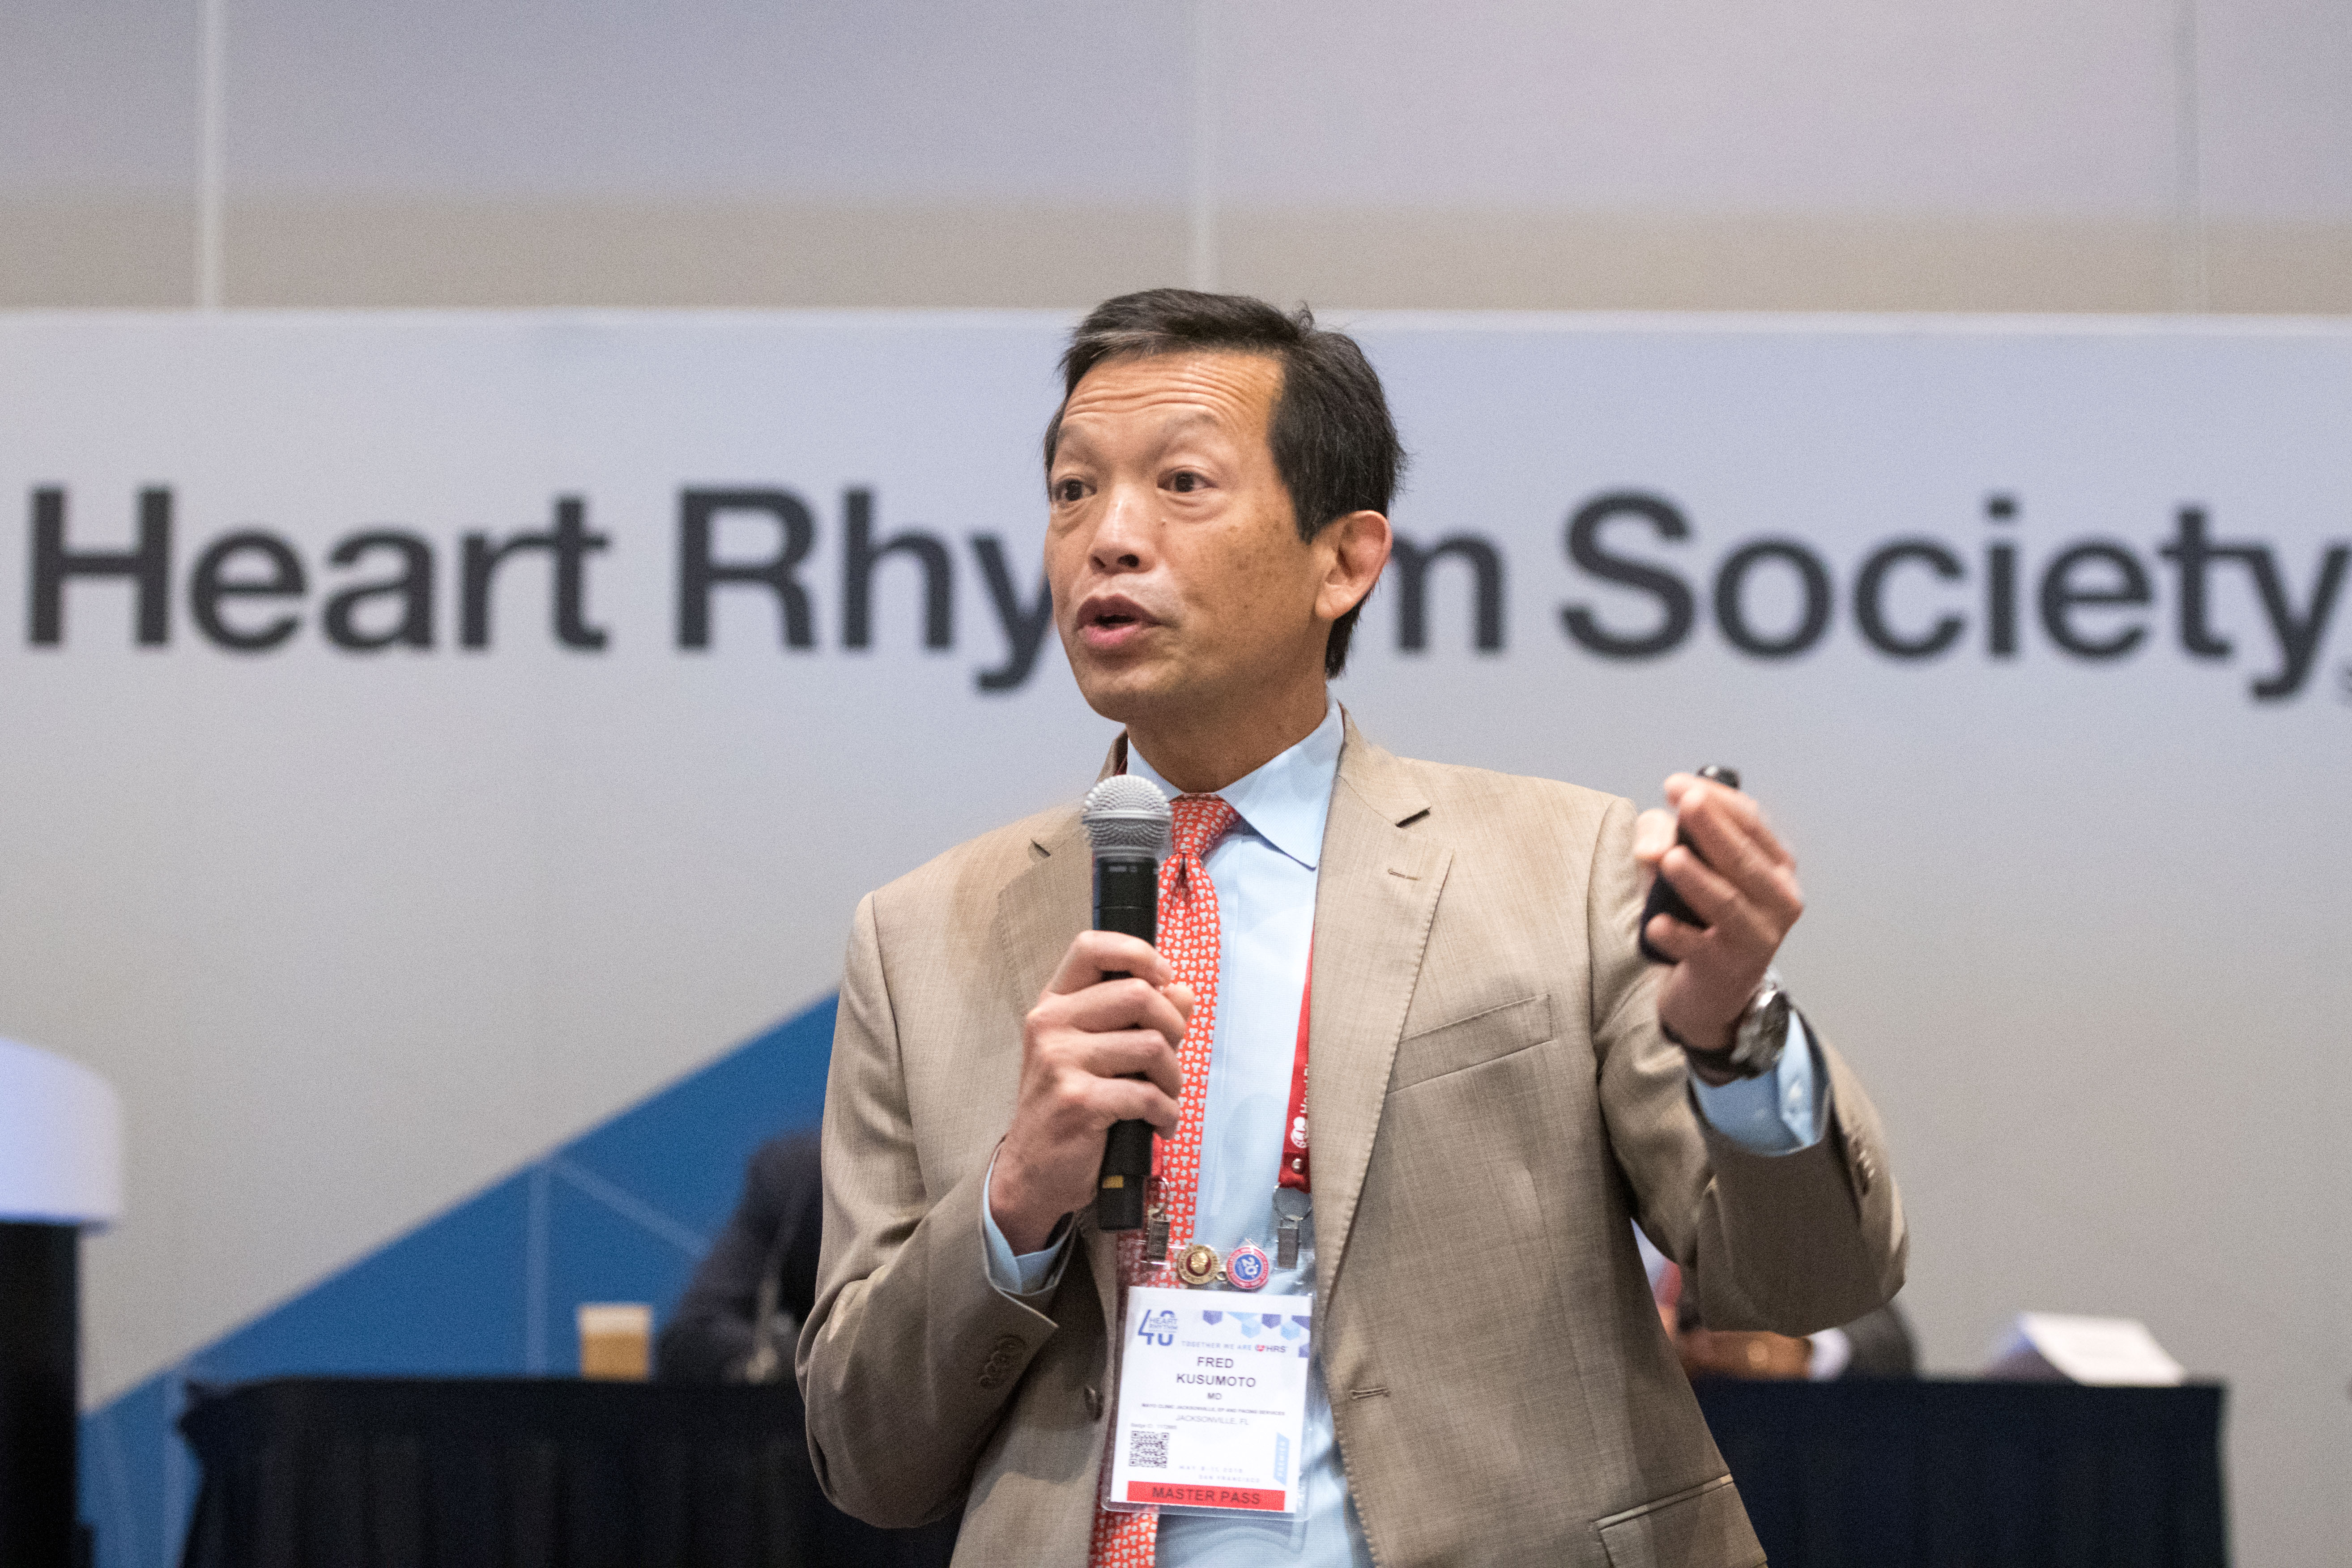 Presenter Heart Rhythm 2021